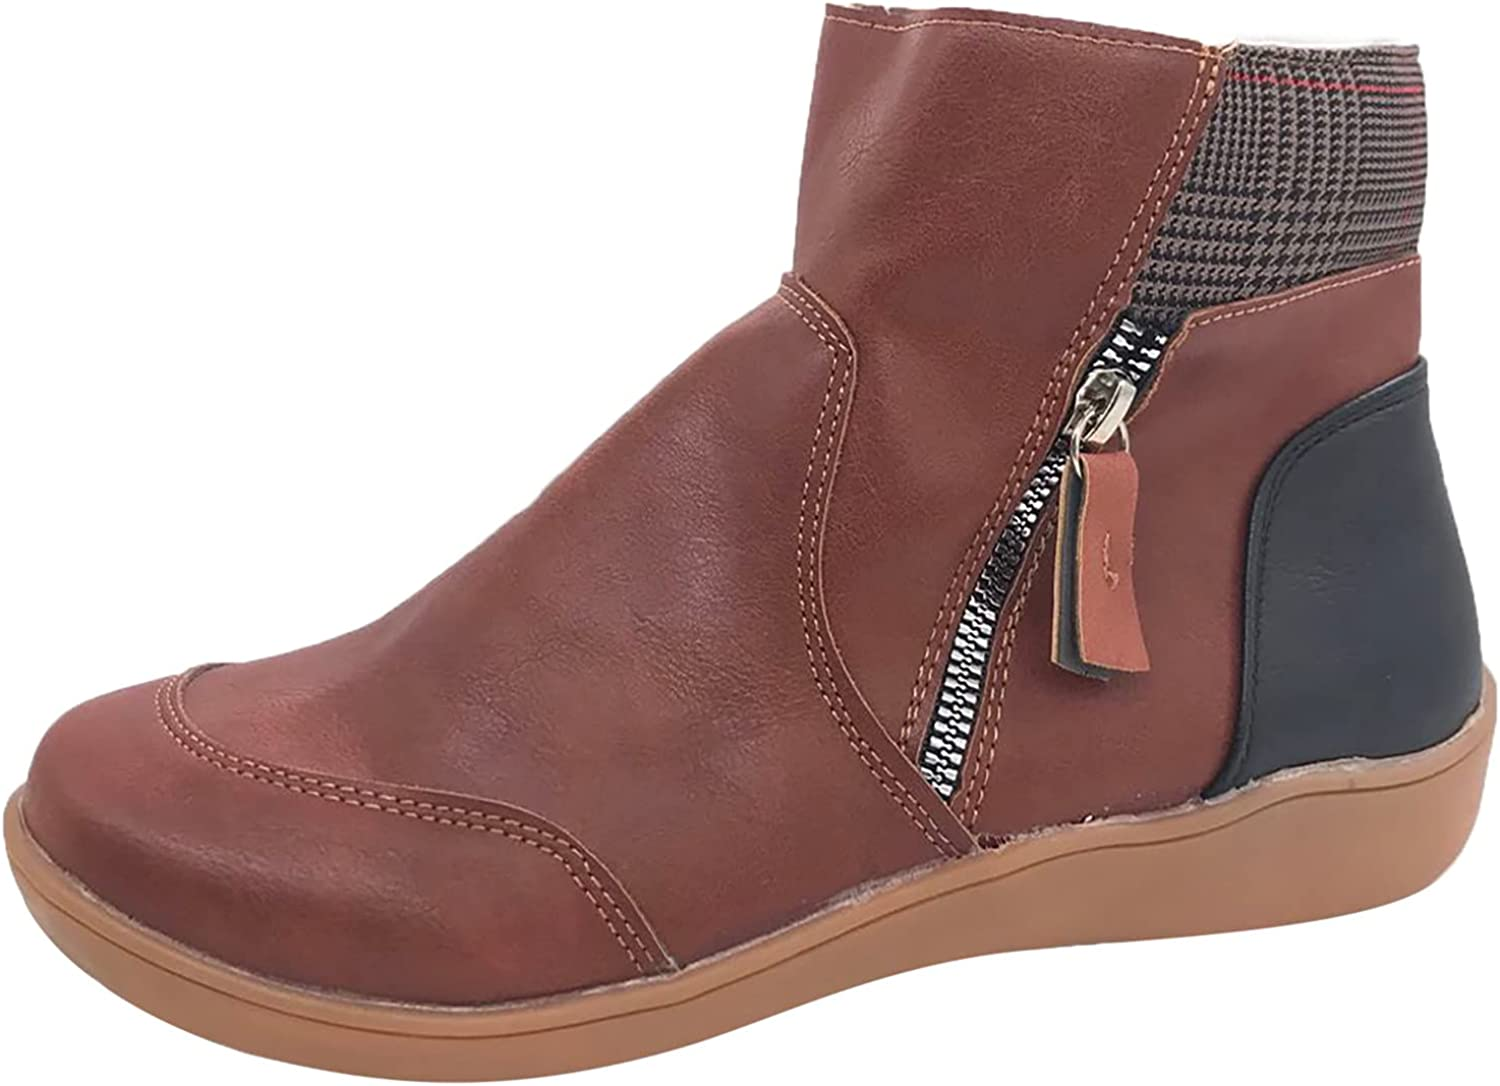 ZiSUGP Women's Vintage Ankle Boots Soft Sole Splicing Round Toe with Side Zipper Short Naked Boots Shoes